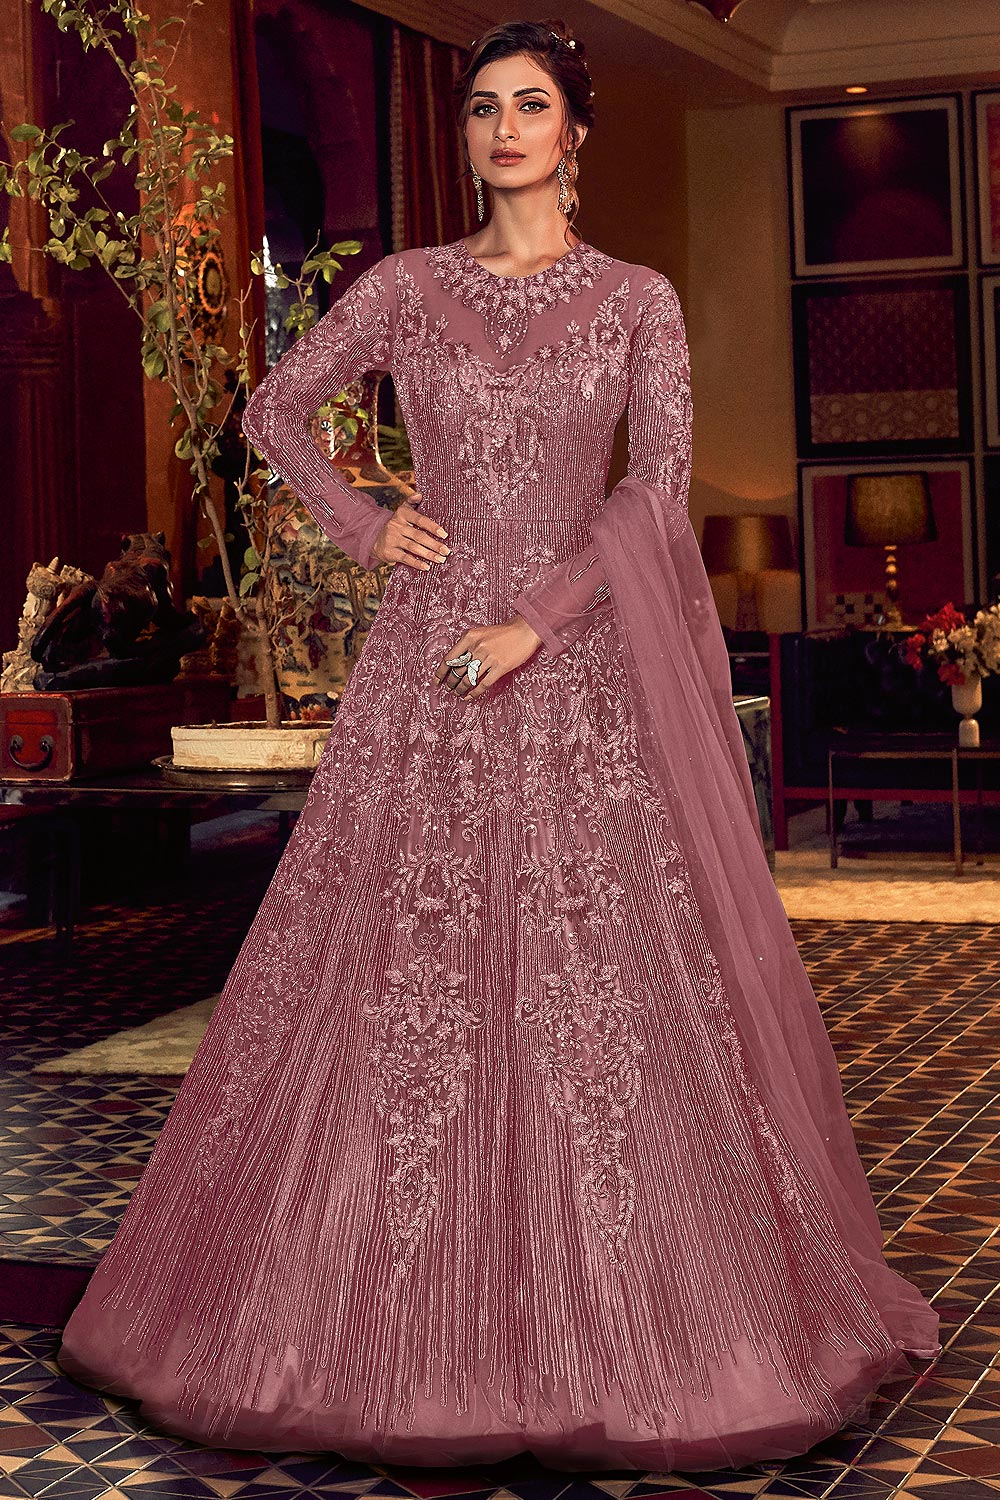 Dusky Pink Embellished Indian Designer Suit